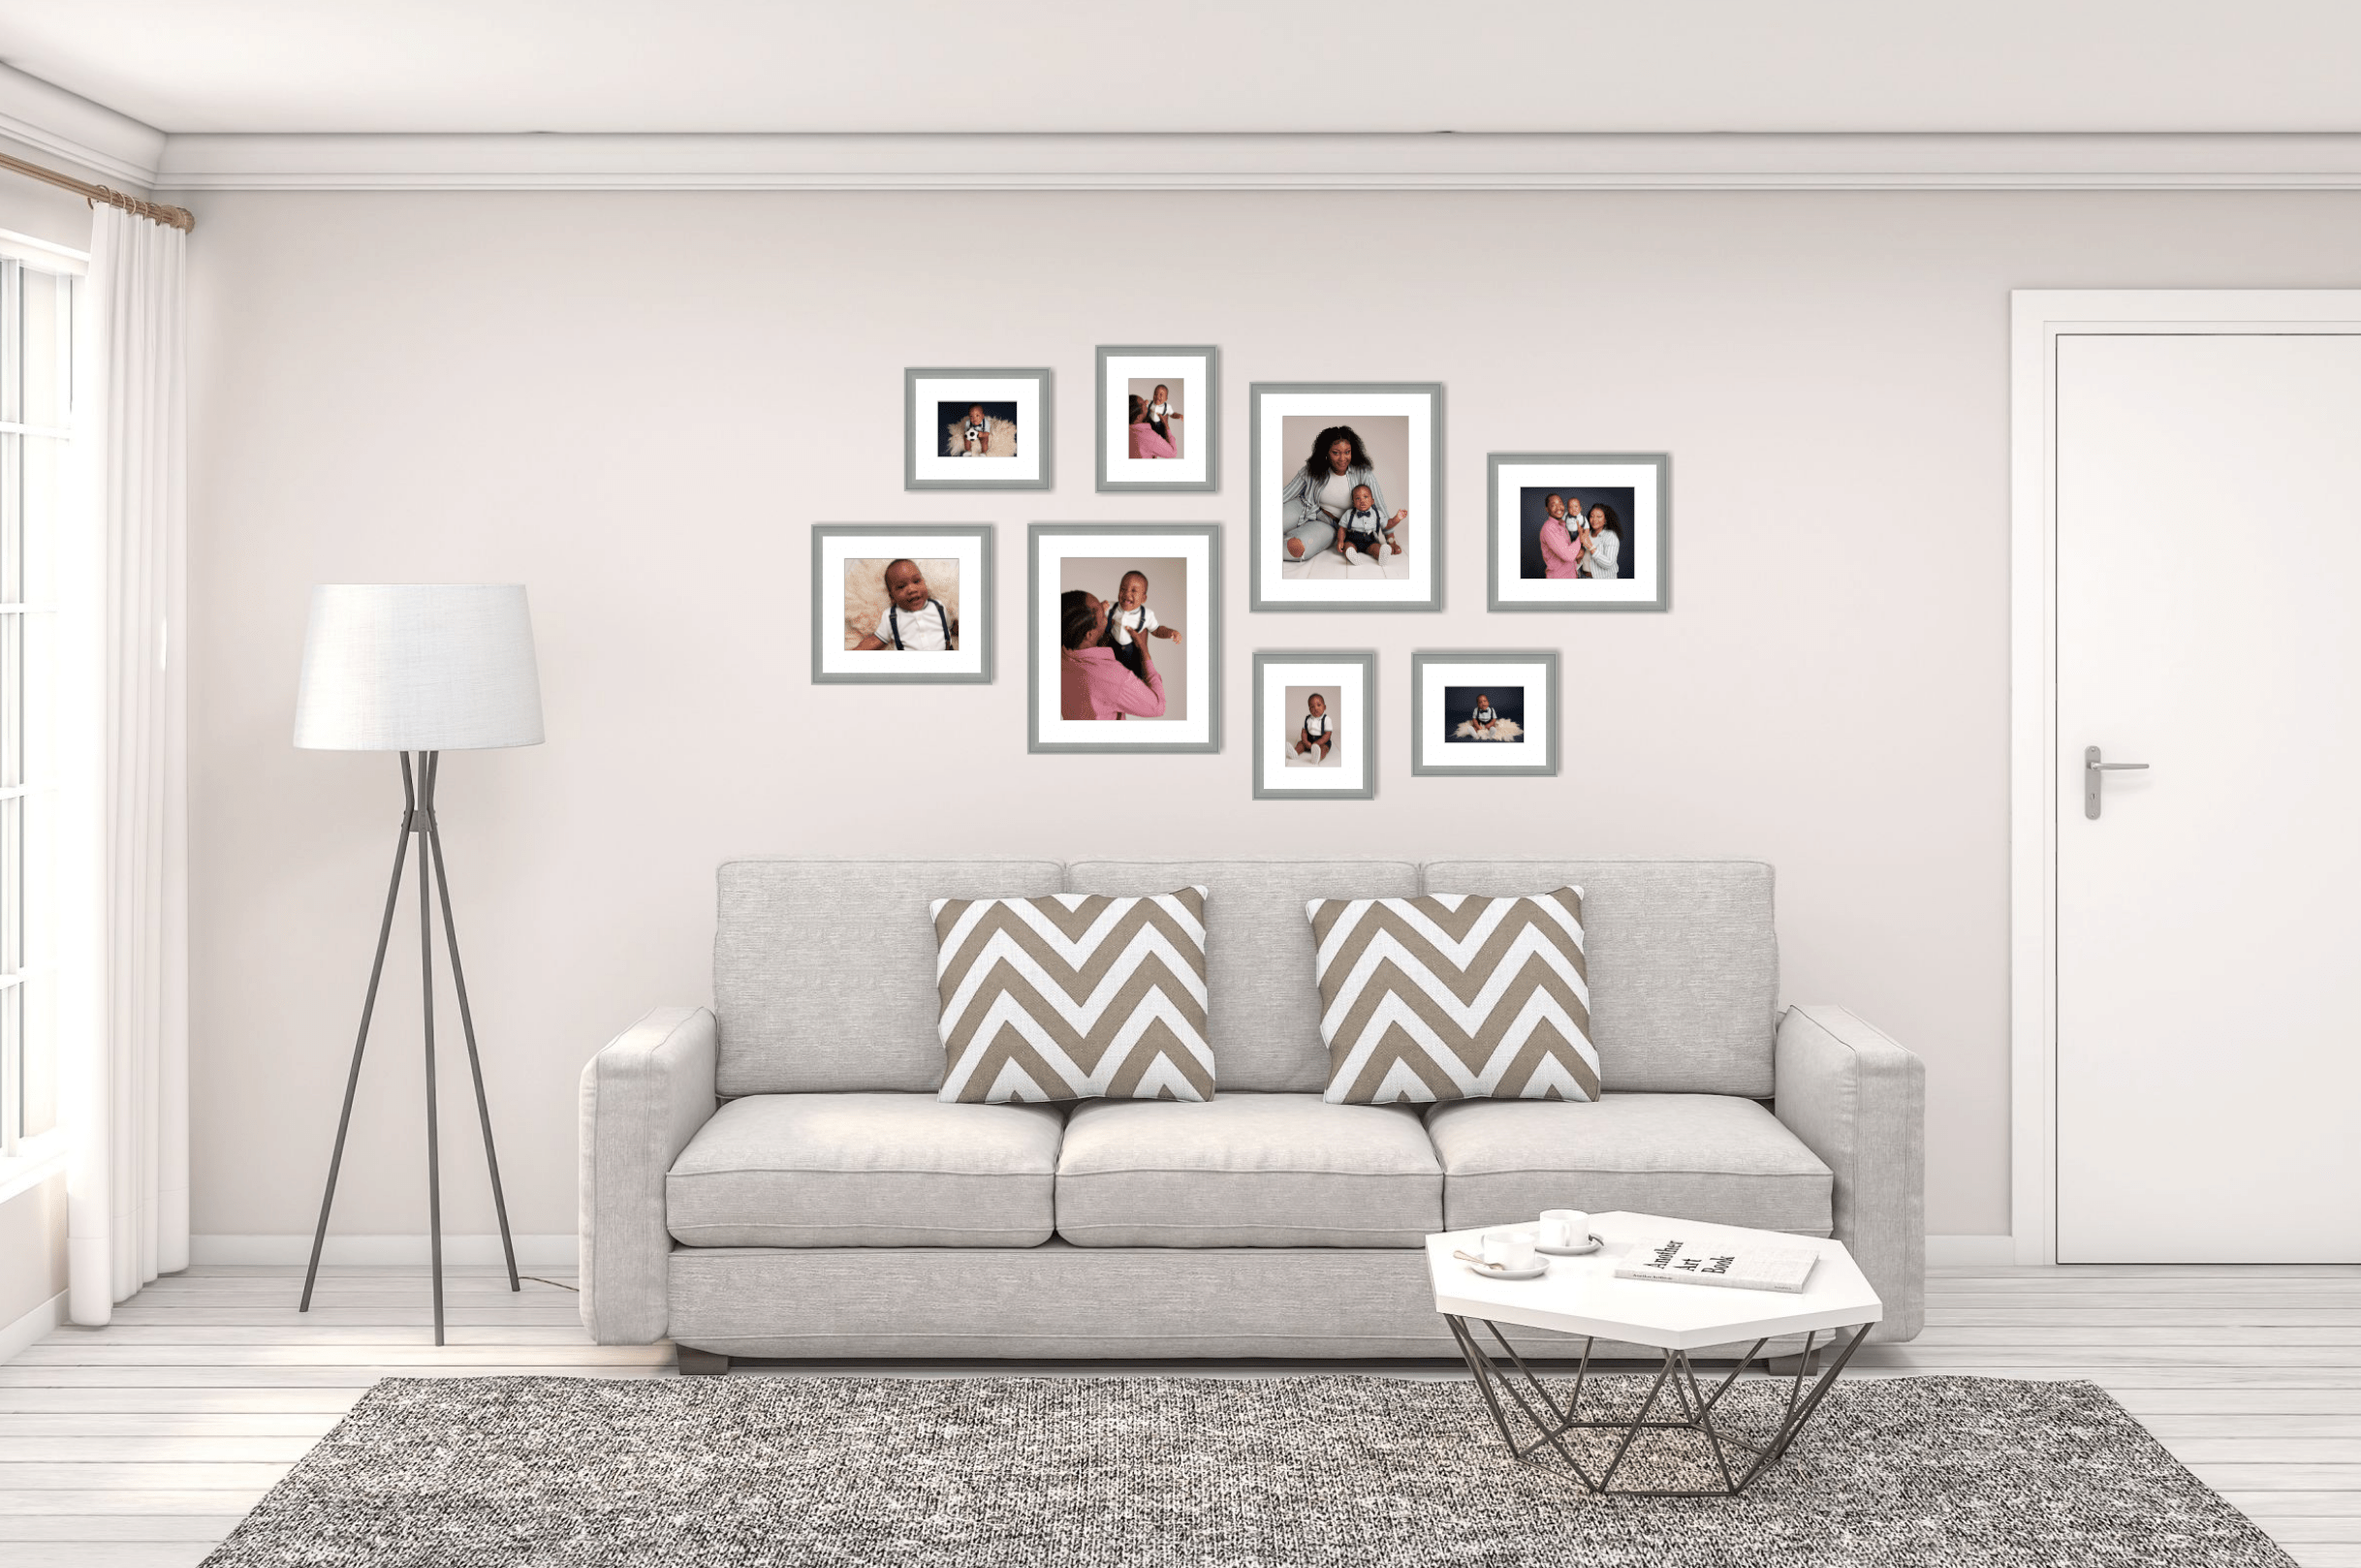 Moments by Katie Mitchell - Wall Art Displays